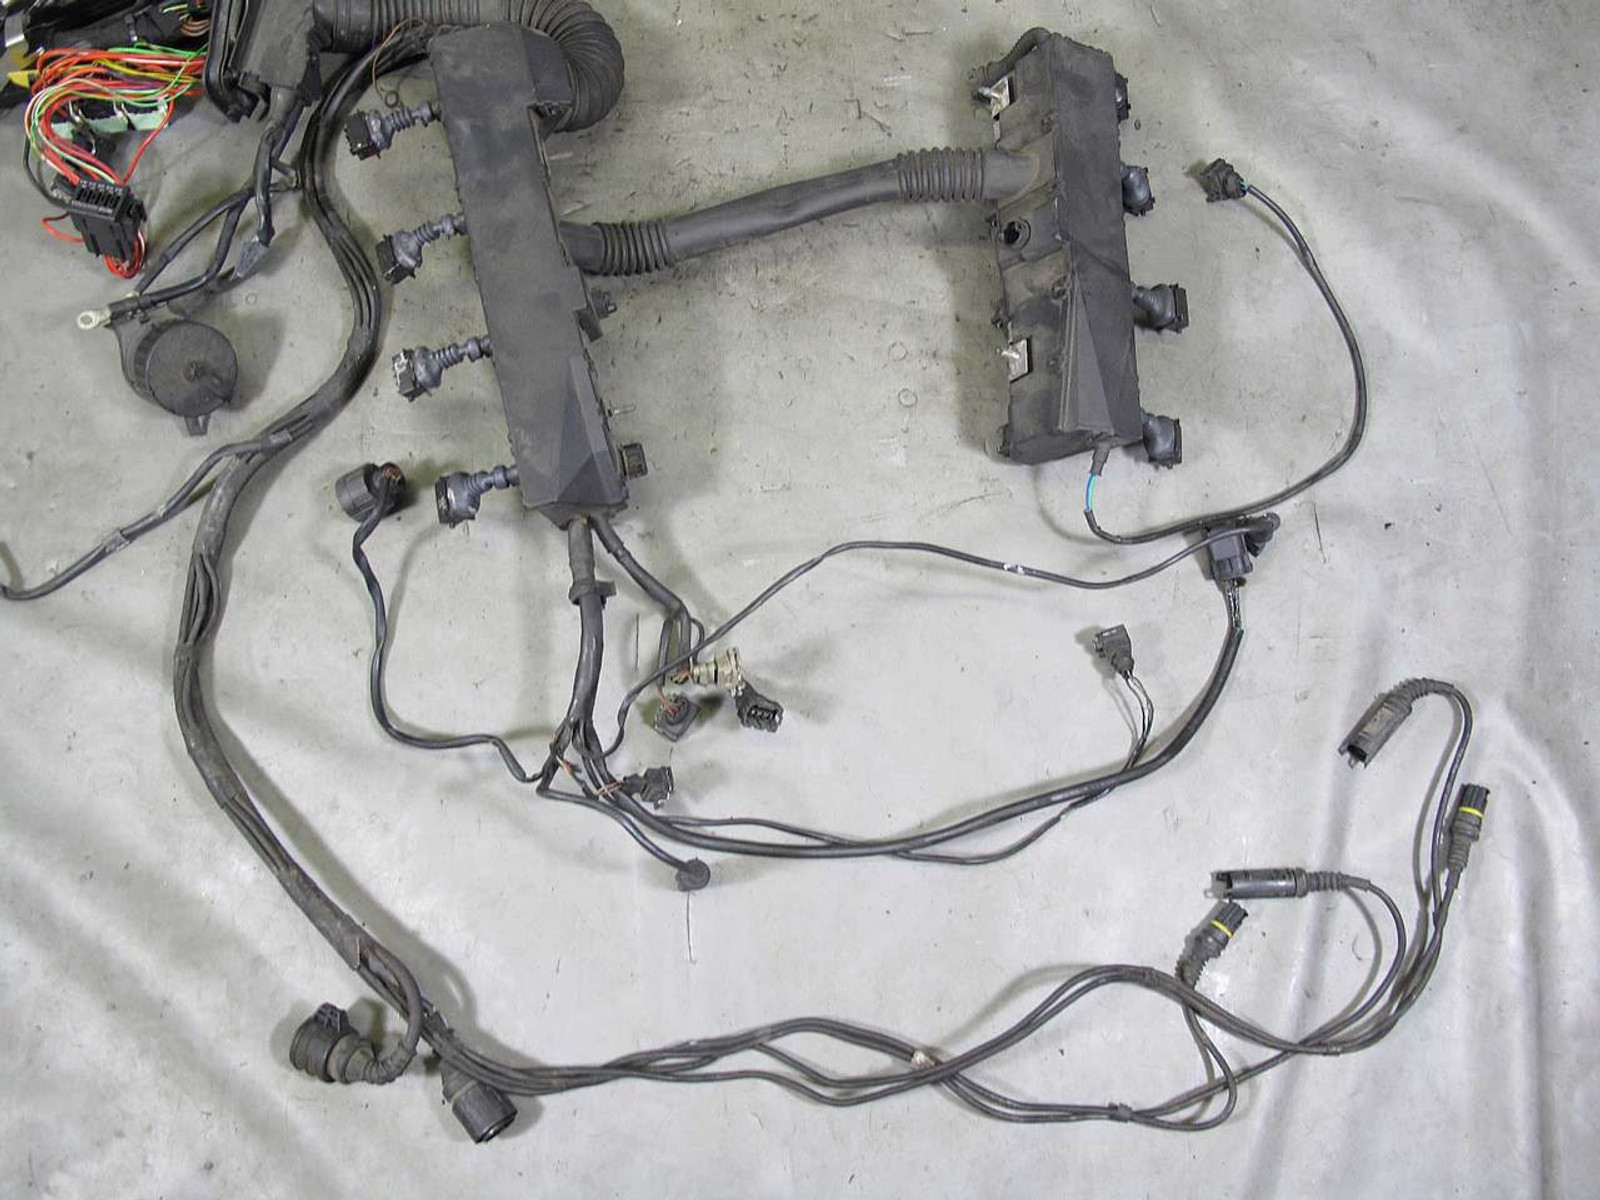 small resolution of bmw 740il engine wiring harness wiring diagram bmw 740il engine wiring harness